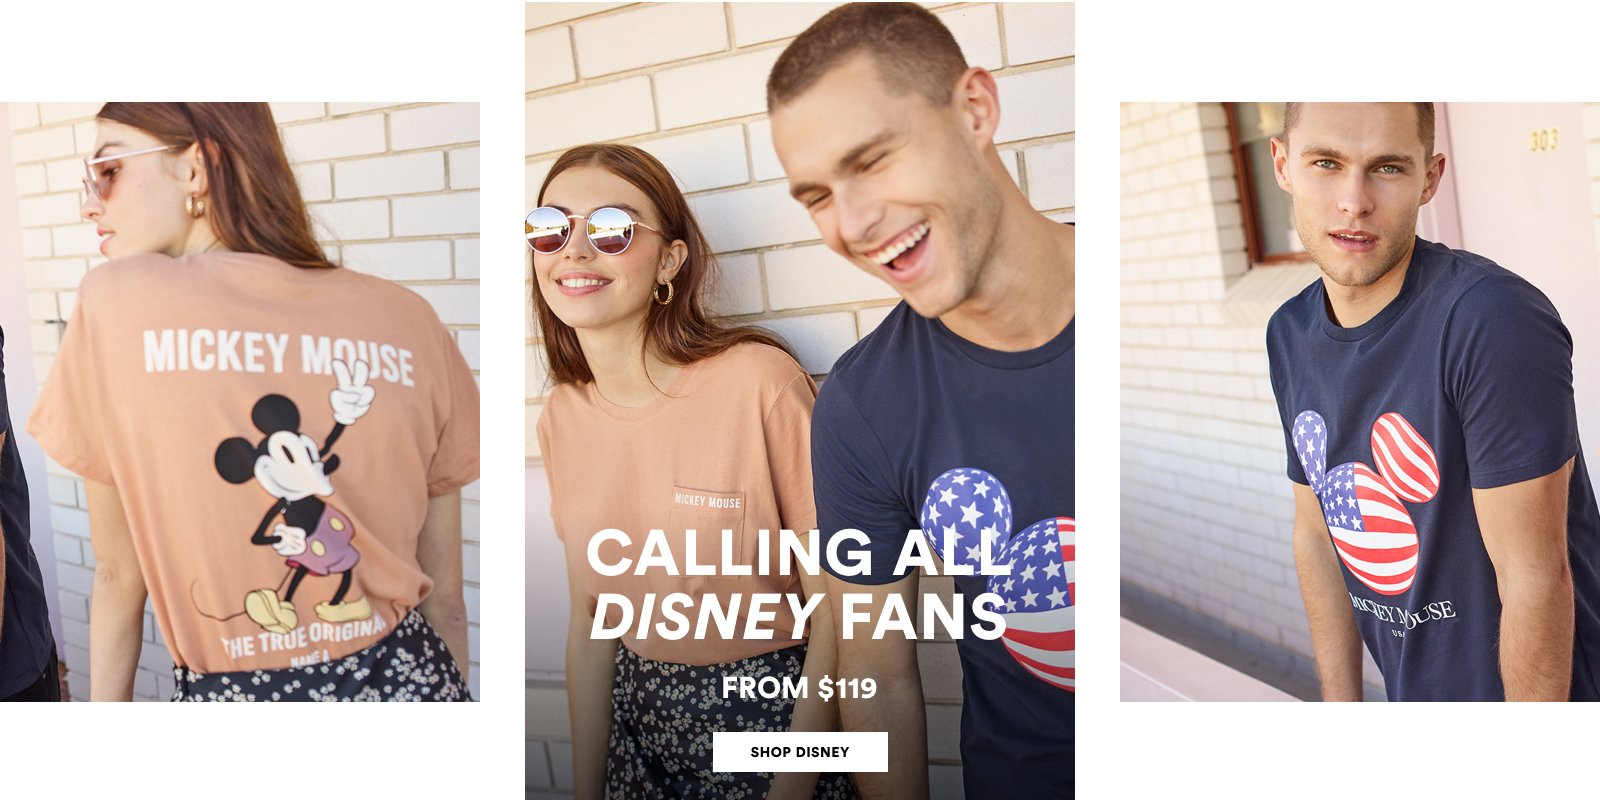 Calling all Disney fans. From $119. Click to Shop Disney.